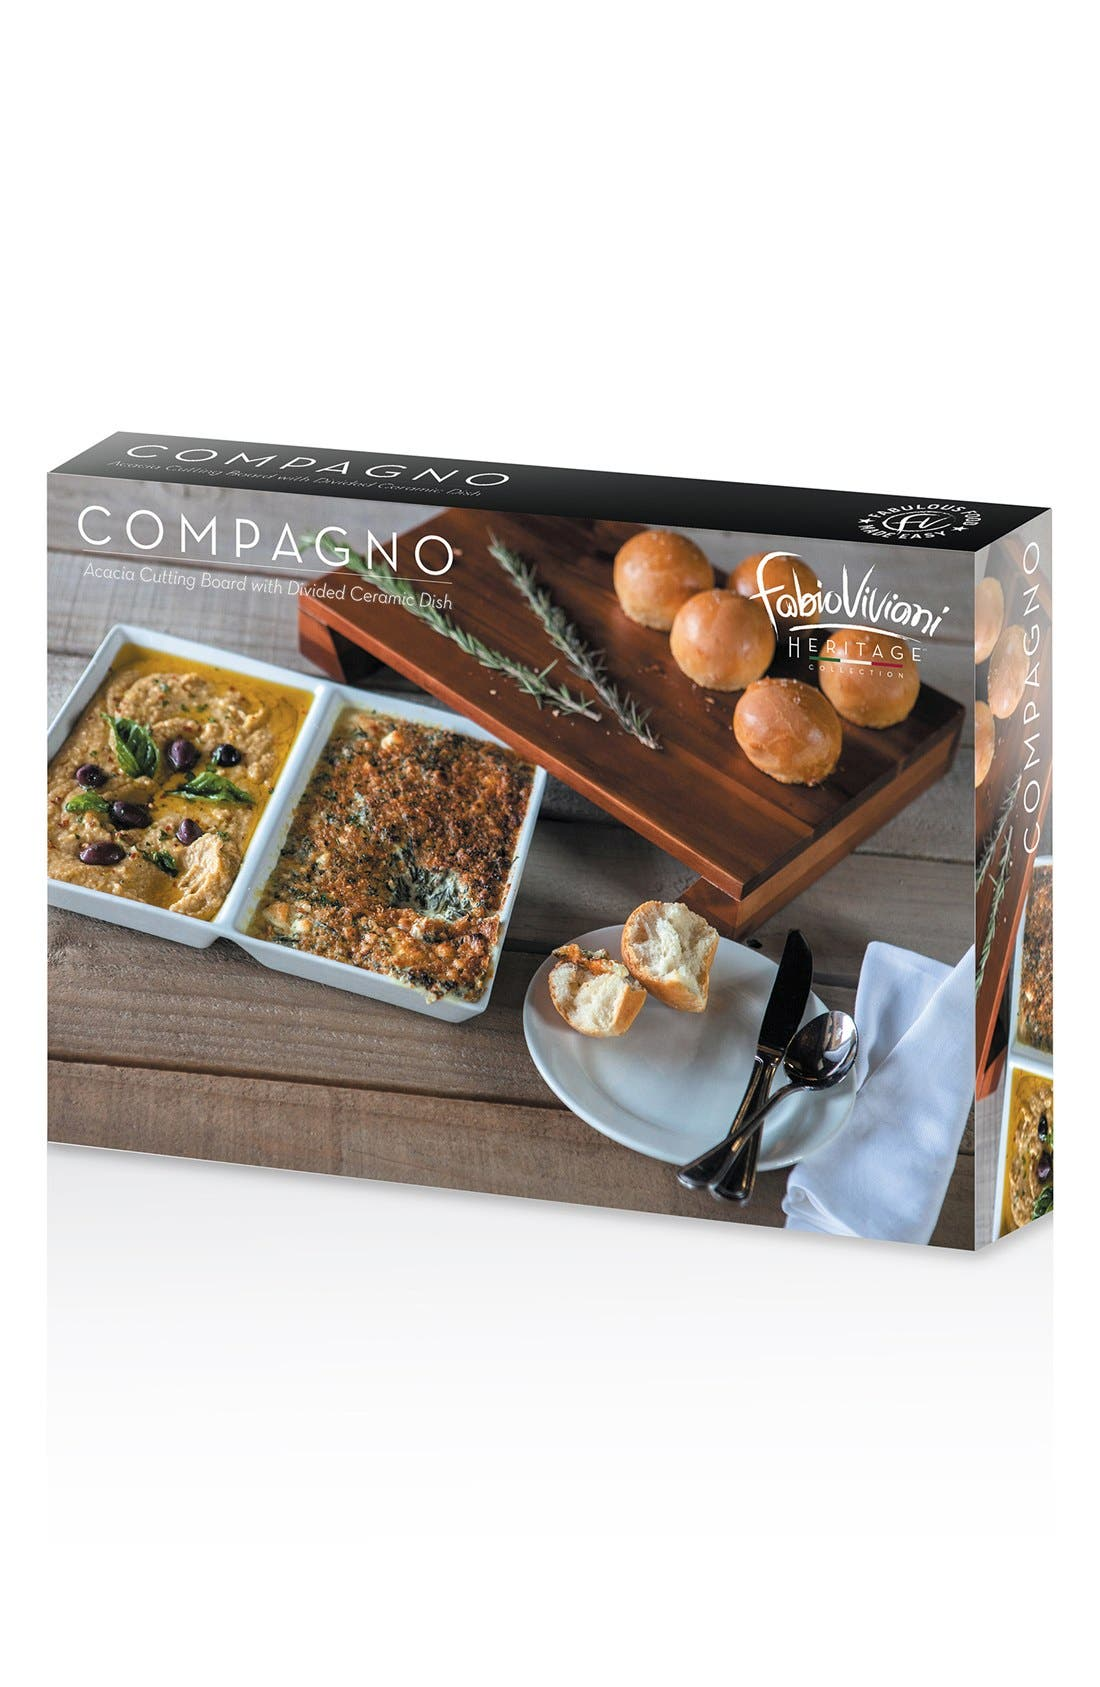 Alternate Image 4  - Picnic Time 'Legacy Heritage Collection by Fabio Viviani - Compagno' Cutting Board